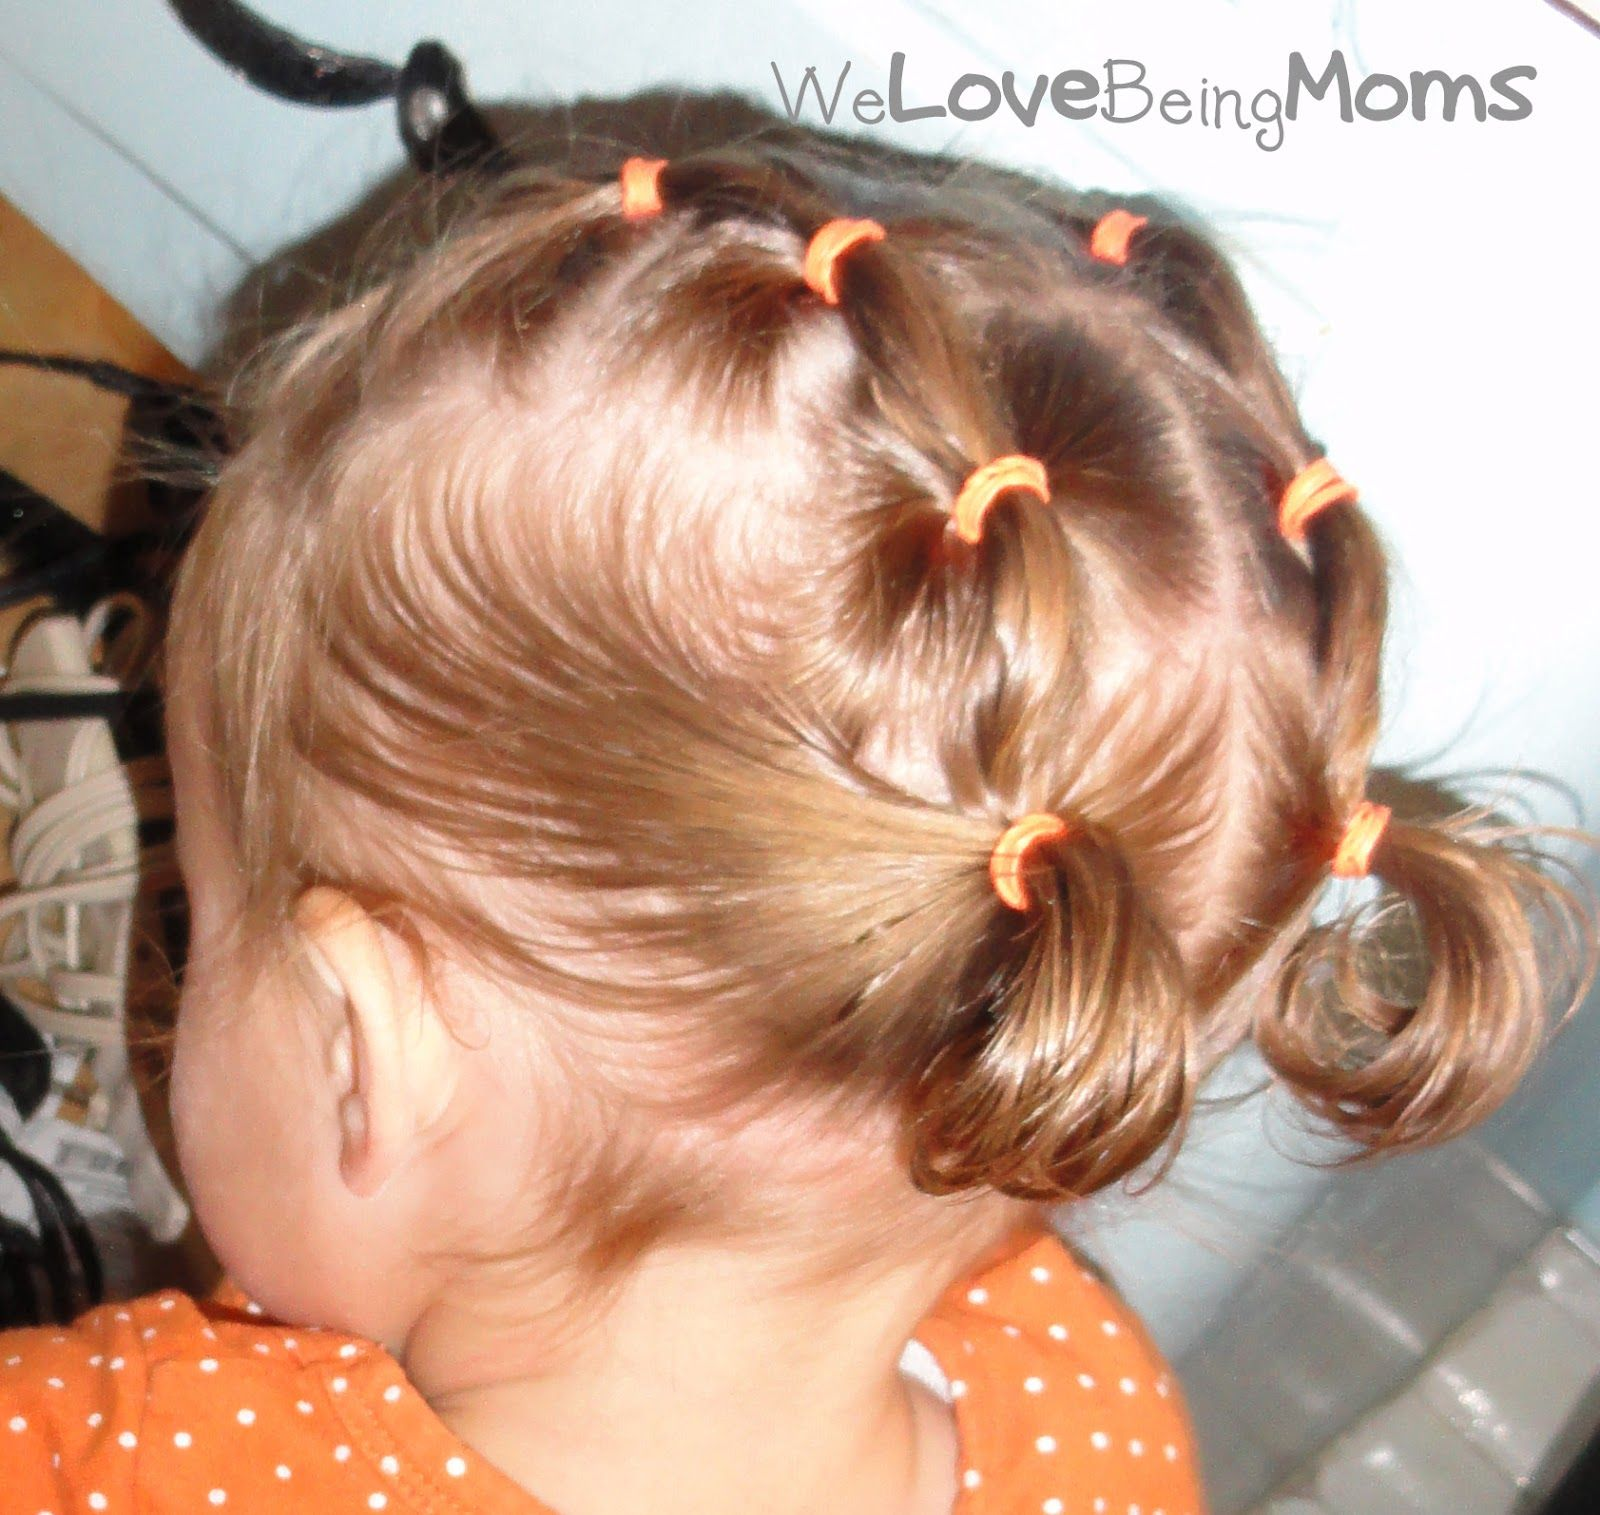 We love being moms toddler hairstyles proyectos que debo